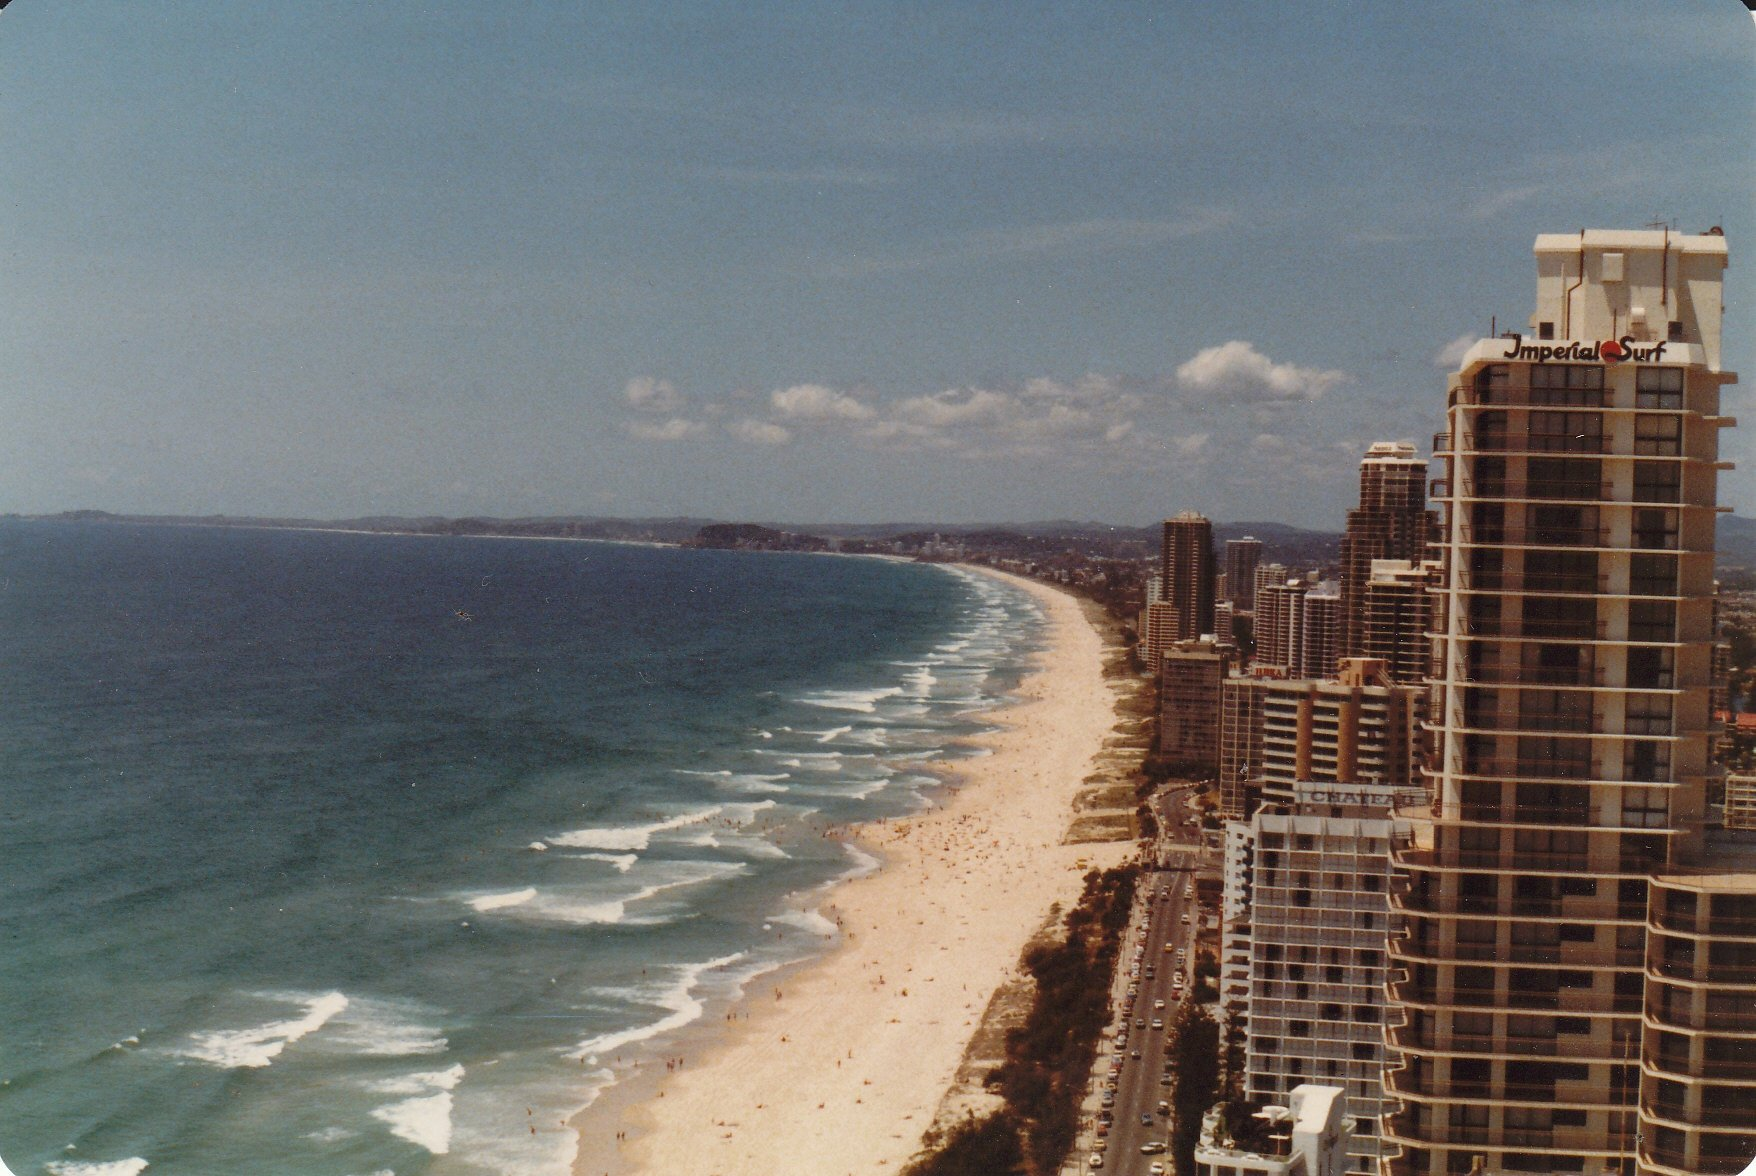 surfajoe's photo of Surfers Paradise (Gold Coast)